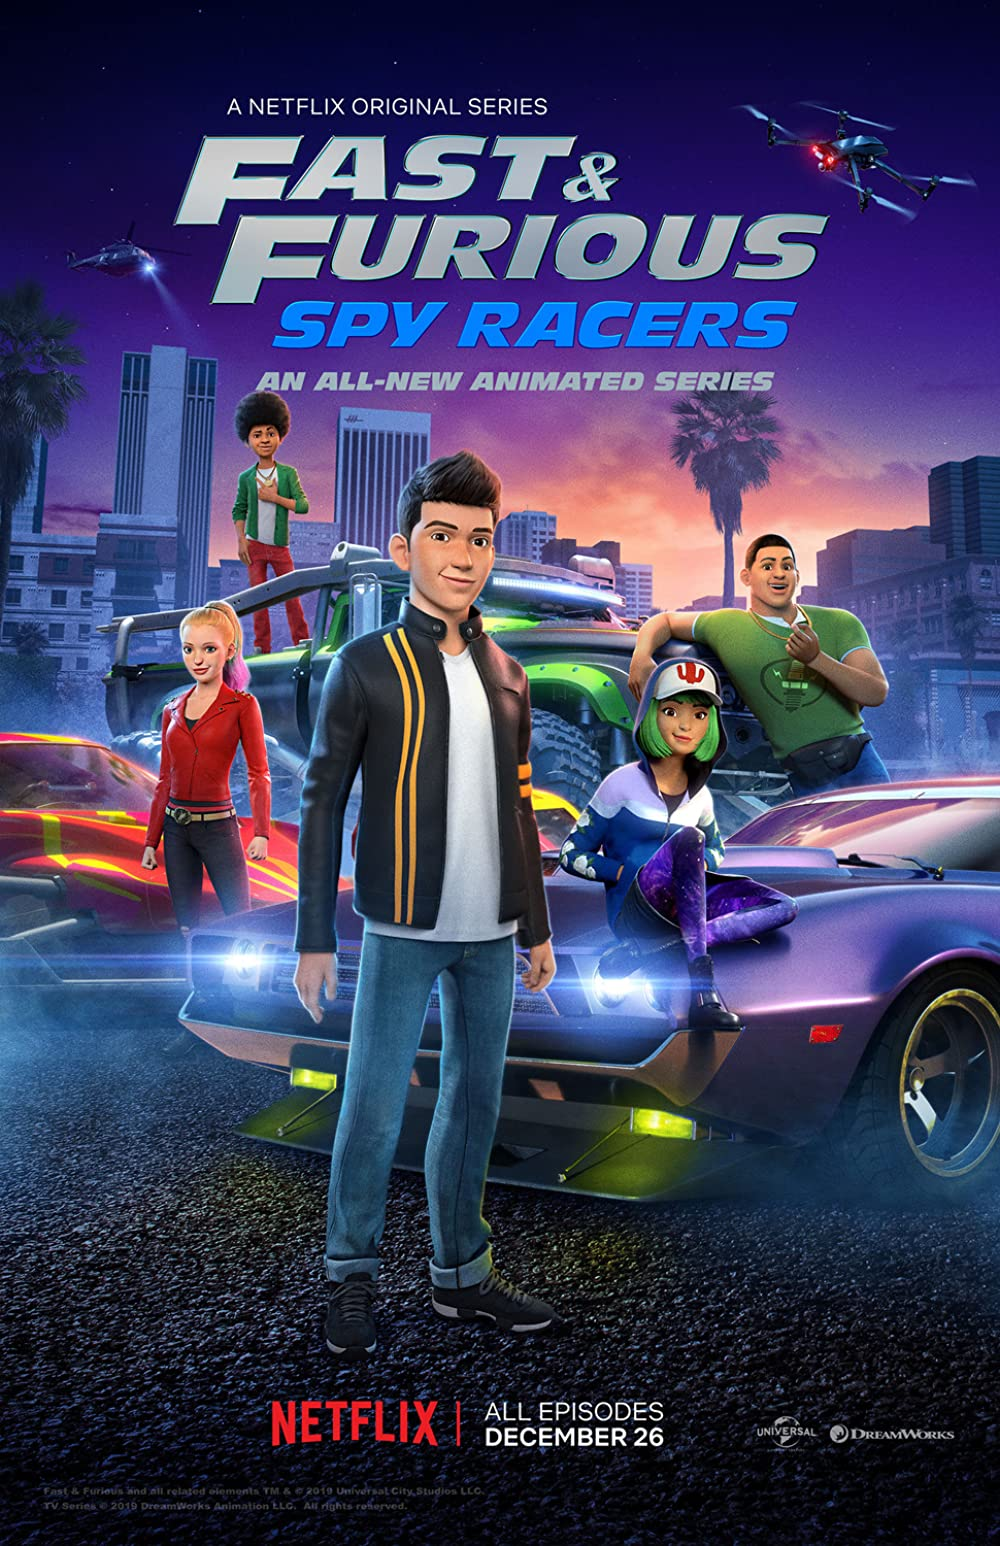 Fast & Furious Spy Racers 2021 S04 Complete Hindi NF Series 720p HDRip 1.3GB Download